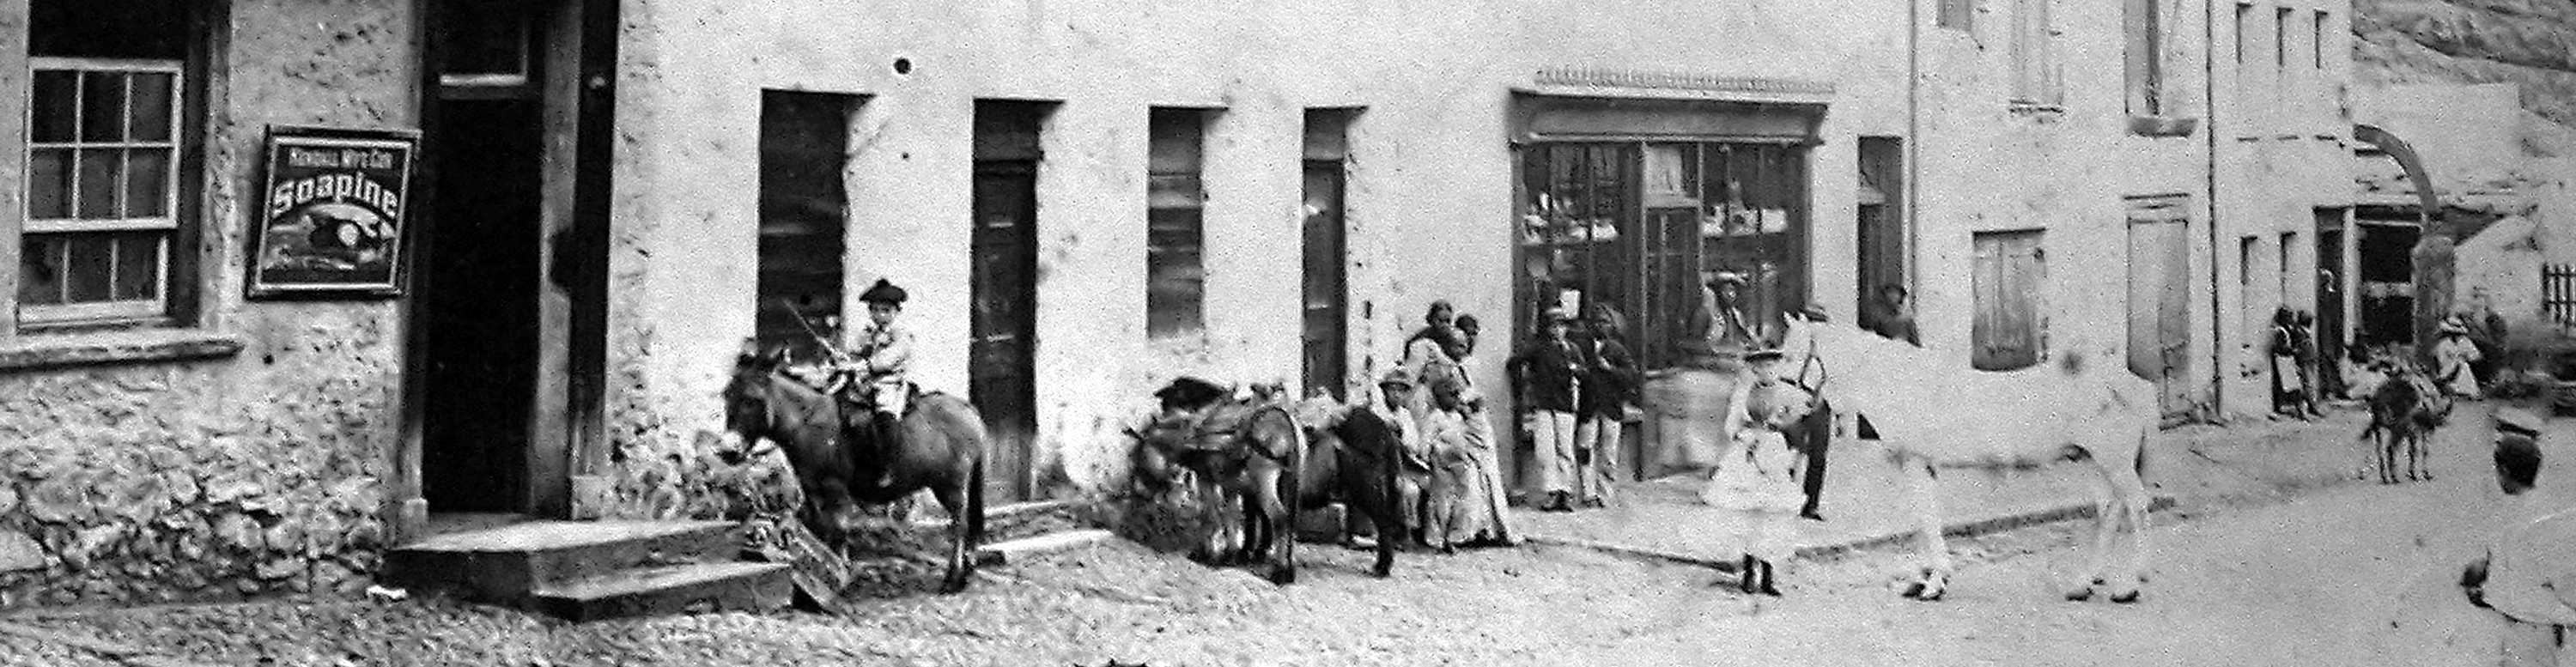 Donkeys in Market Street, Jamestown, c.1900 (and a horse!)